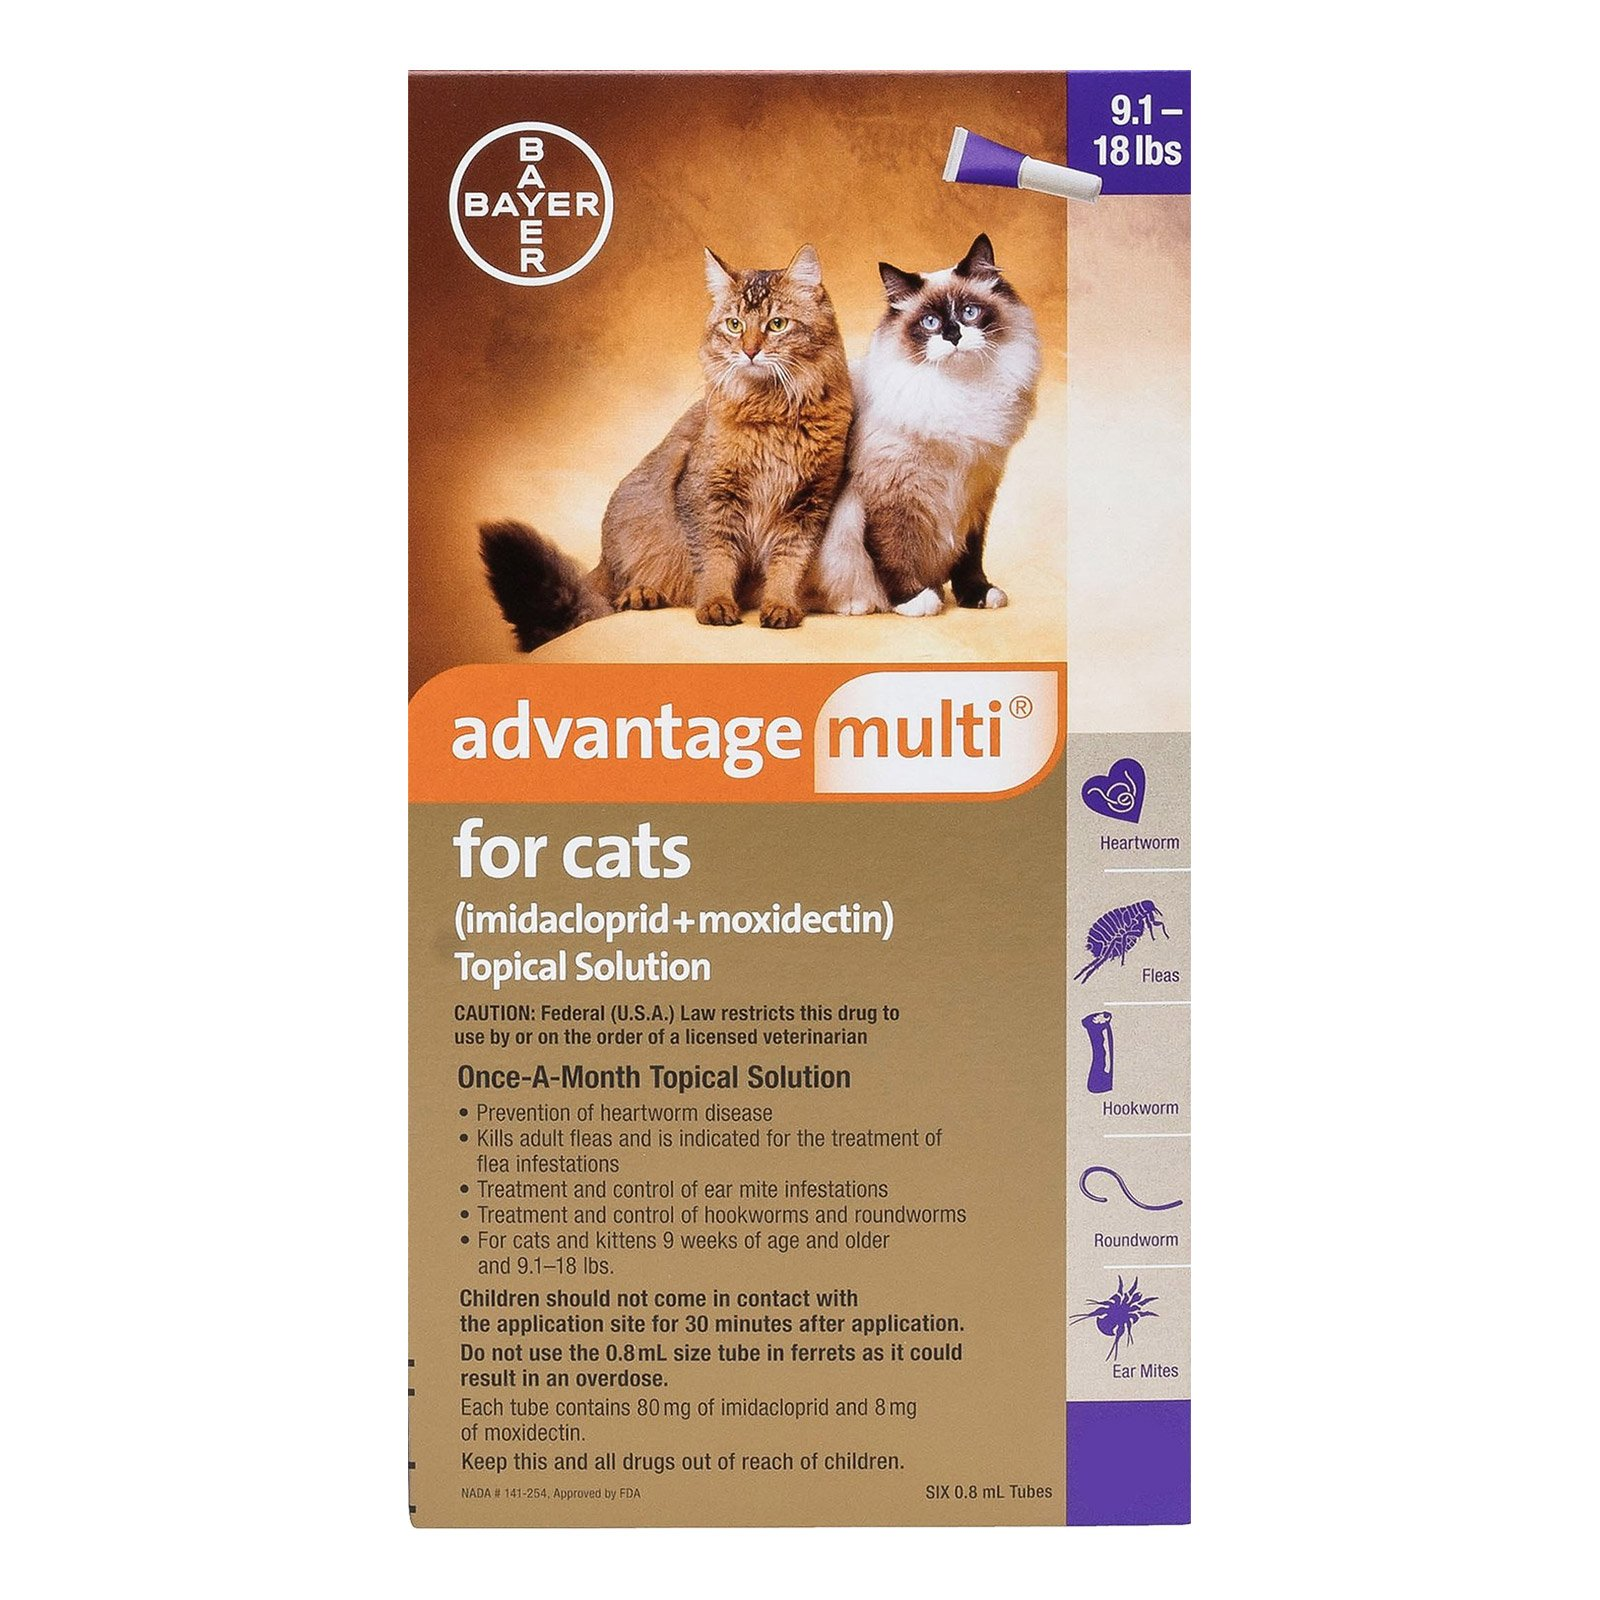 advantage-multi-advocate-cats-over-10lbs-purple